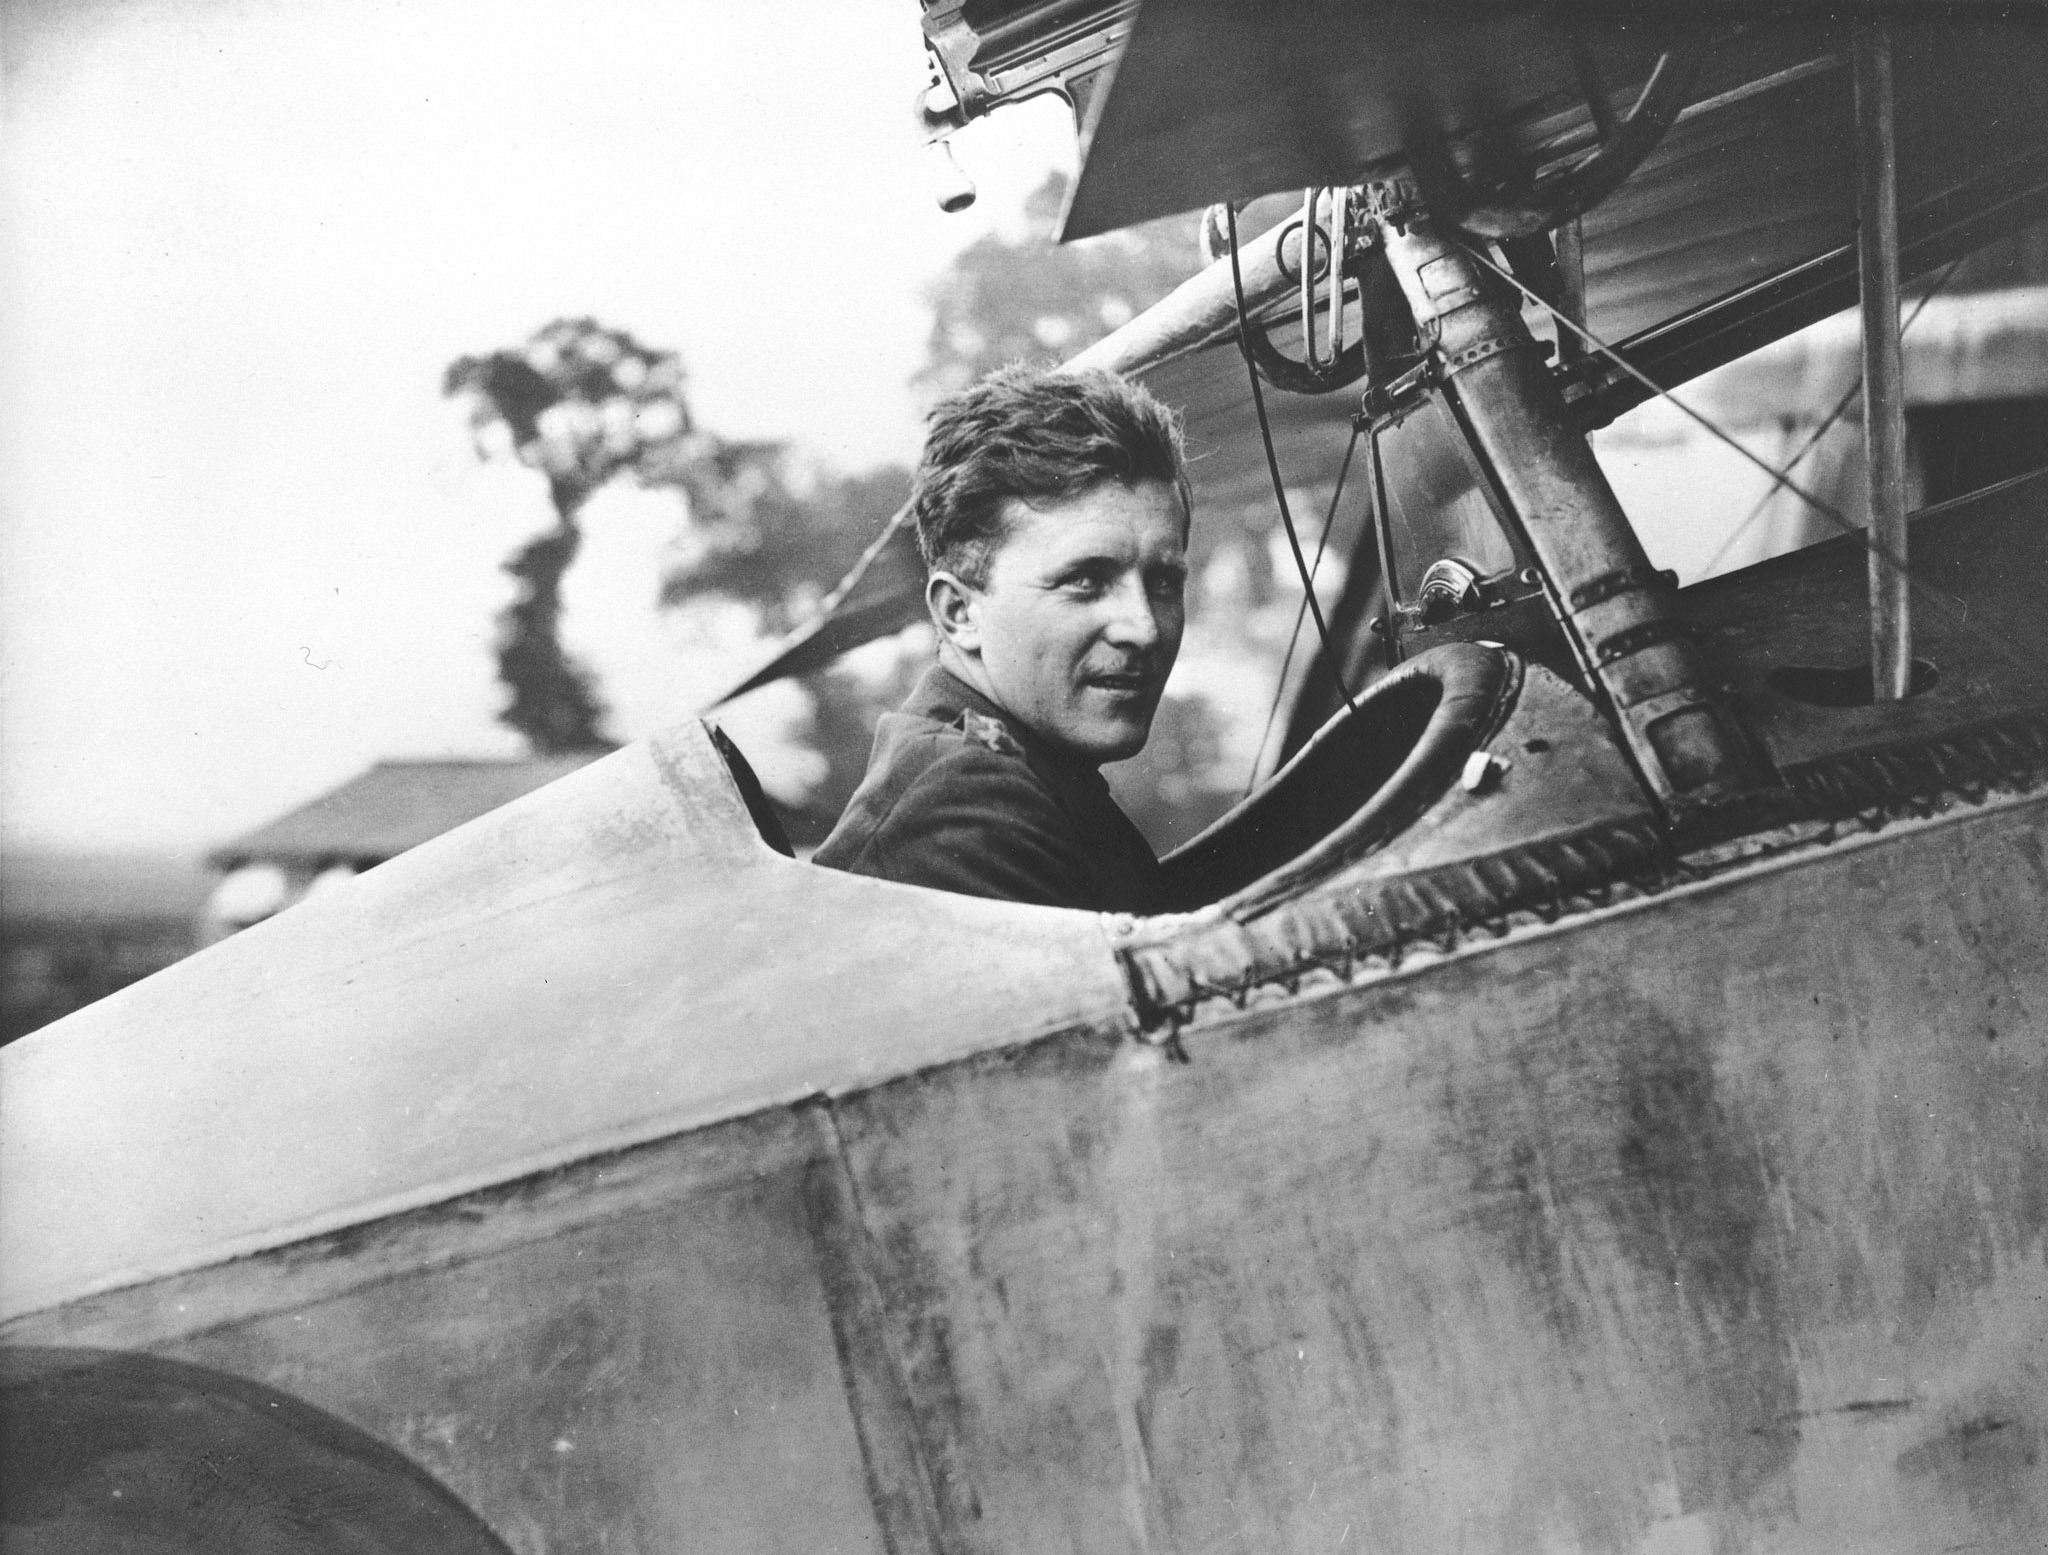 A black and white photo of man sitting in the cockpit of First World War fighter biplane.